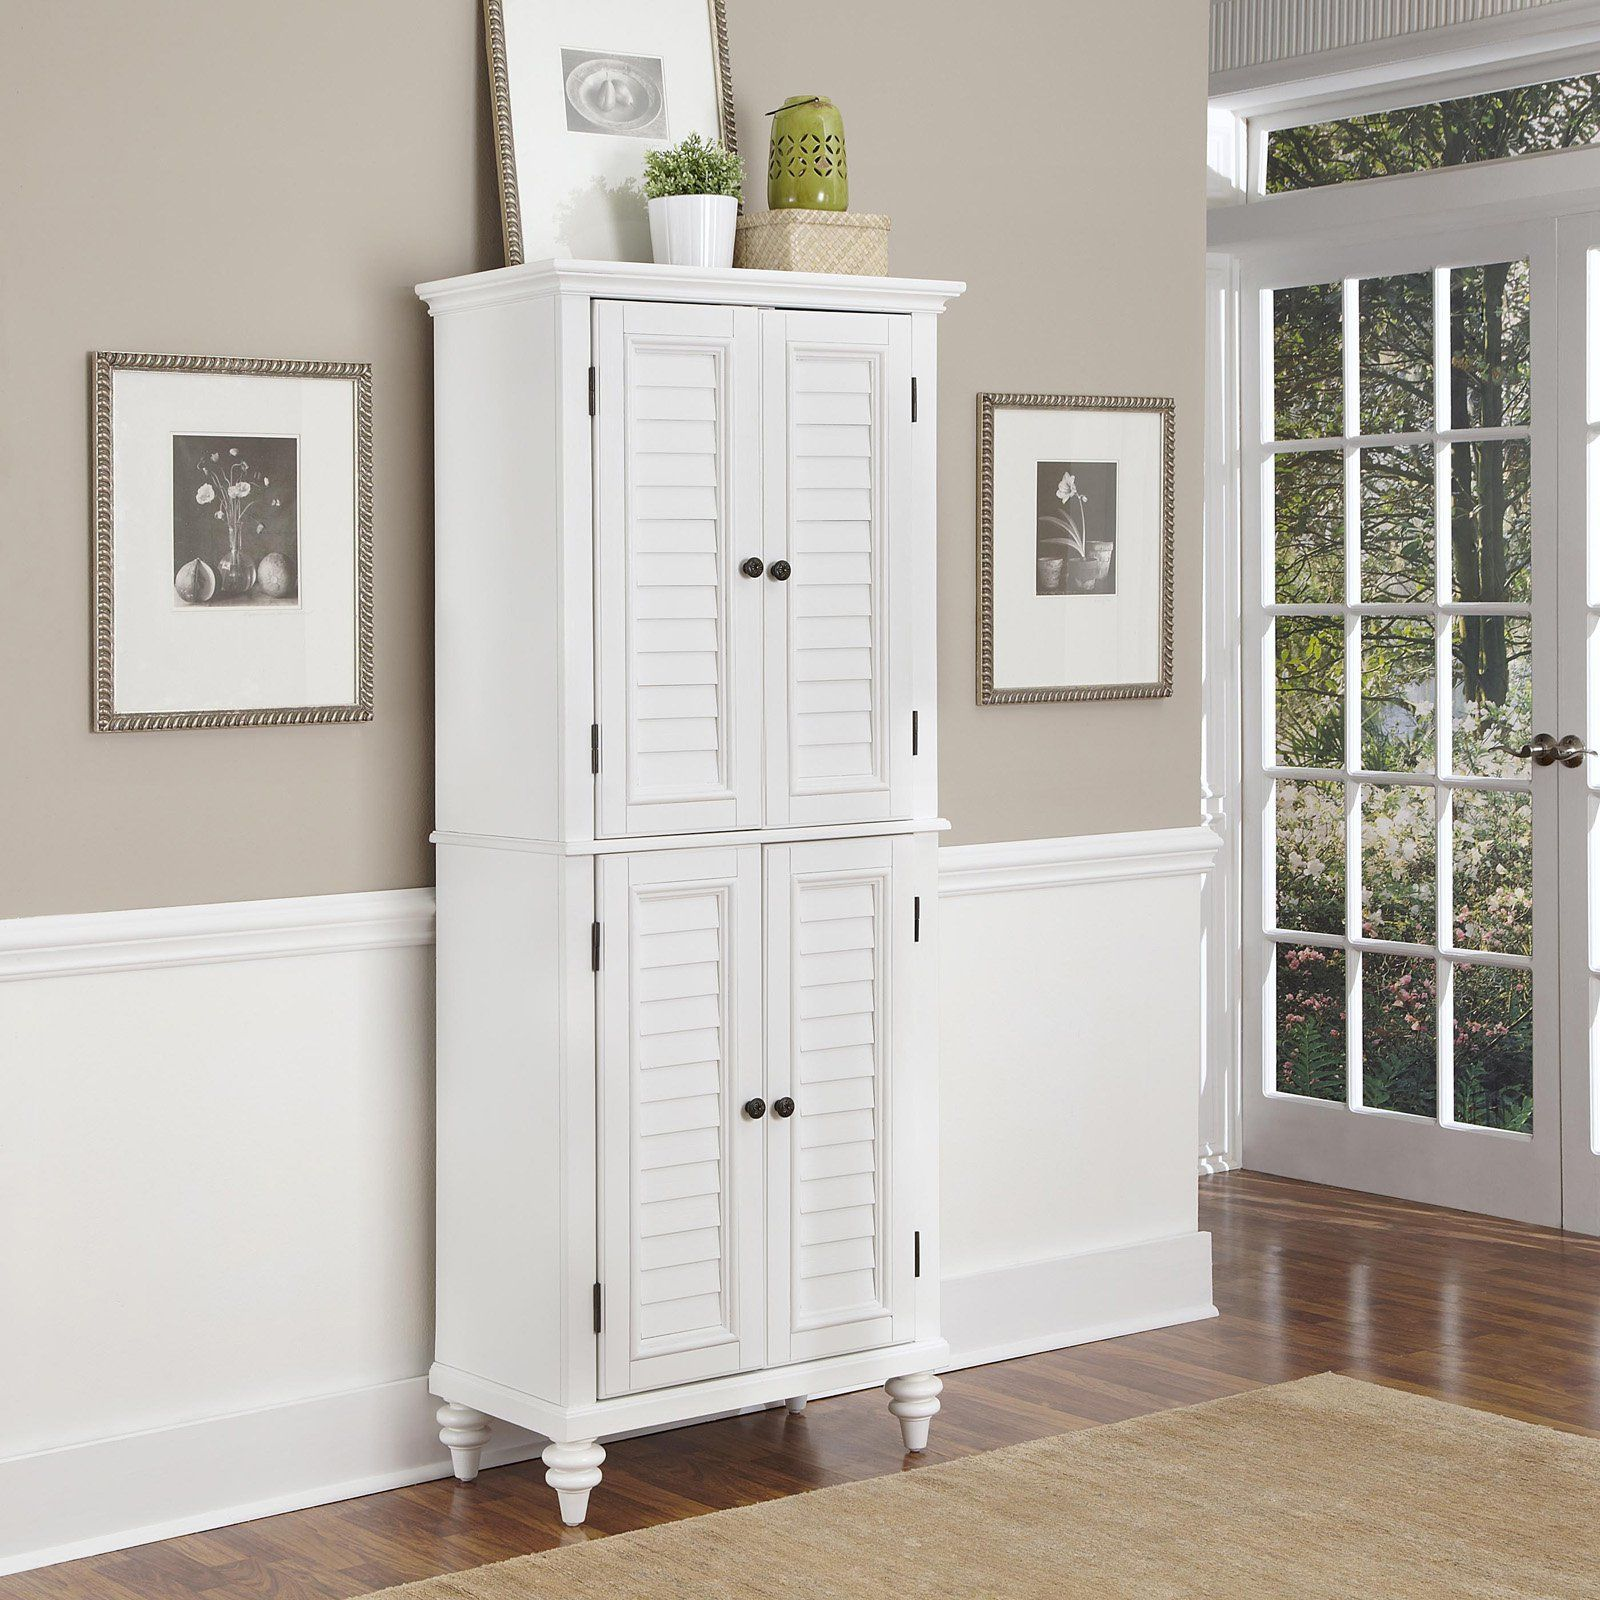 Stand Alone Pantry Cabinet Ikea Jpg 1600